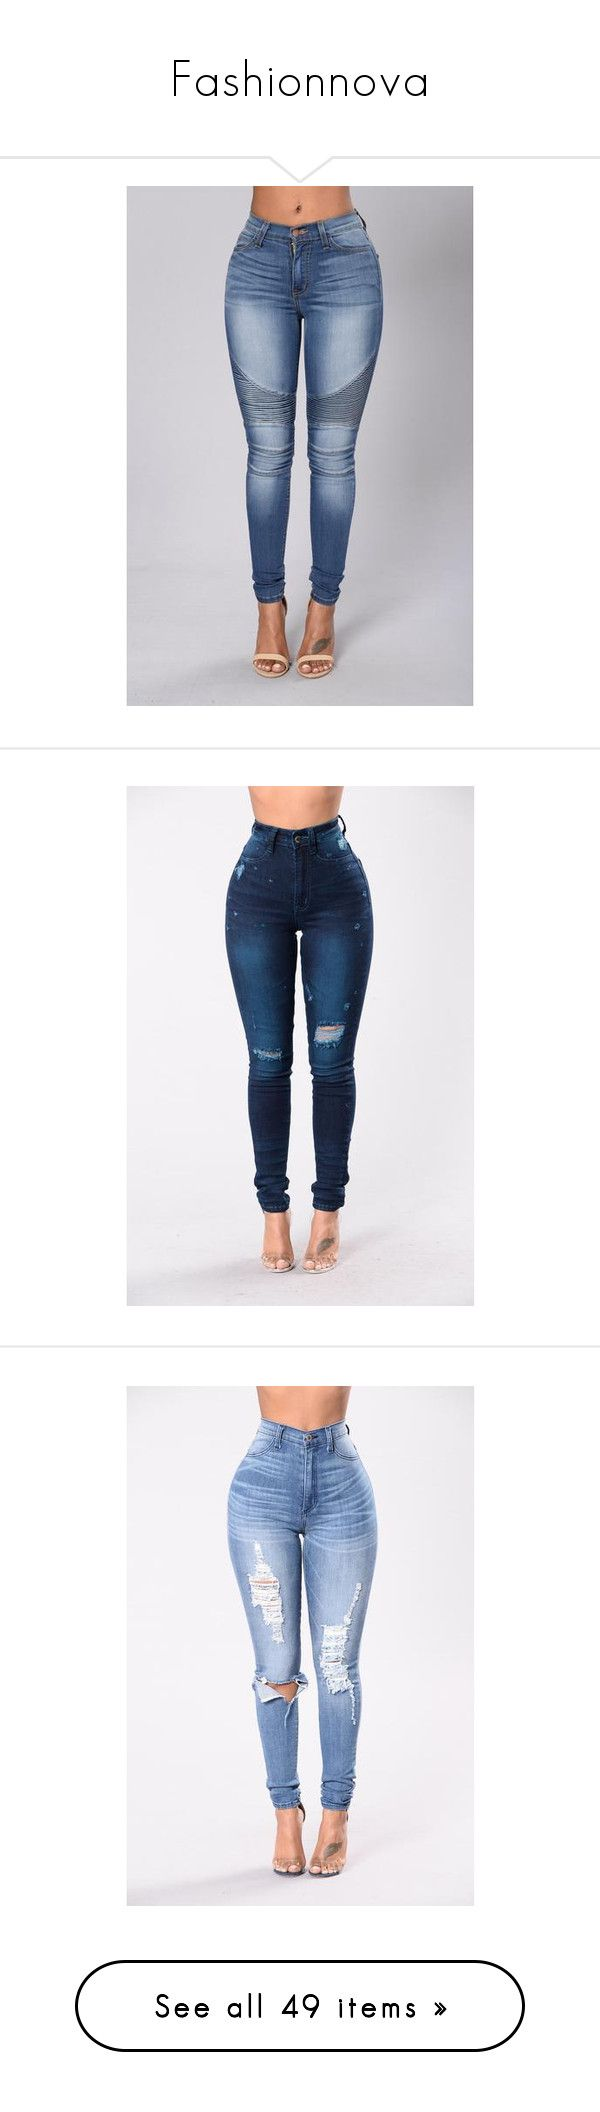 """Fashionnova"" by bigdaddycam43 ❤ liked on Polyvore featuring jeans, bottoms, womens jeans, olive green jeans, army green jeans, olive jeans, blue jeans, pants, high waisted distressed jeans and high rise skinny jeans"